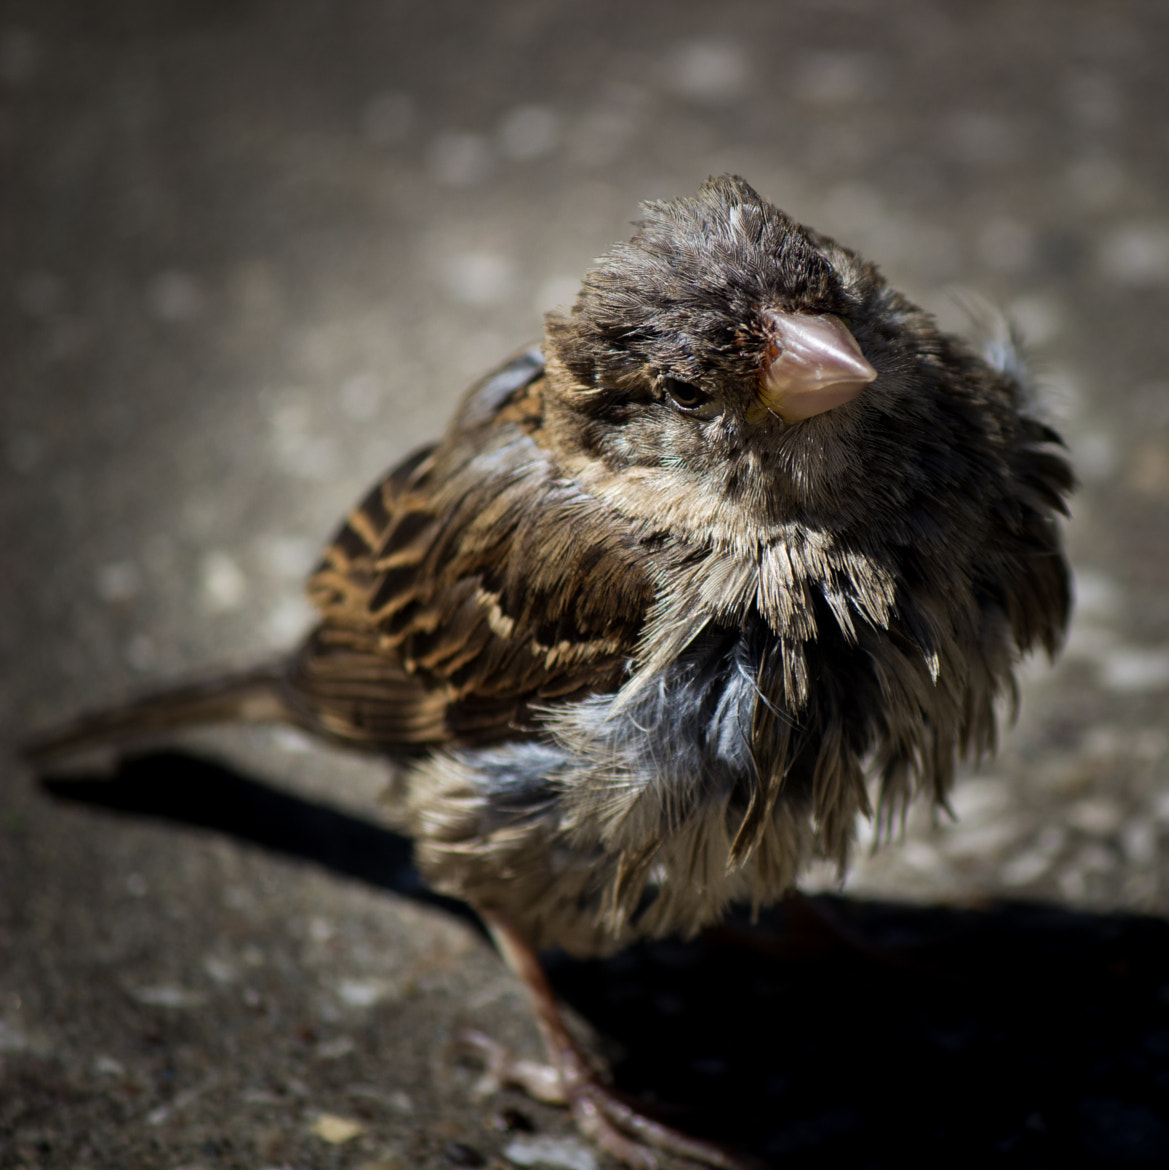 Photograph Sparrow by Dan Mulley on 500px